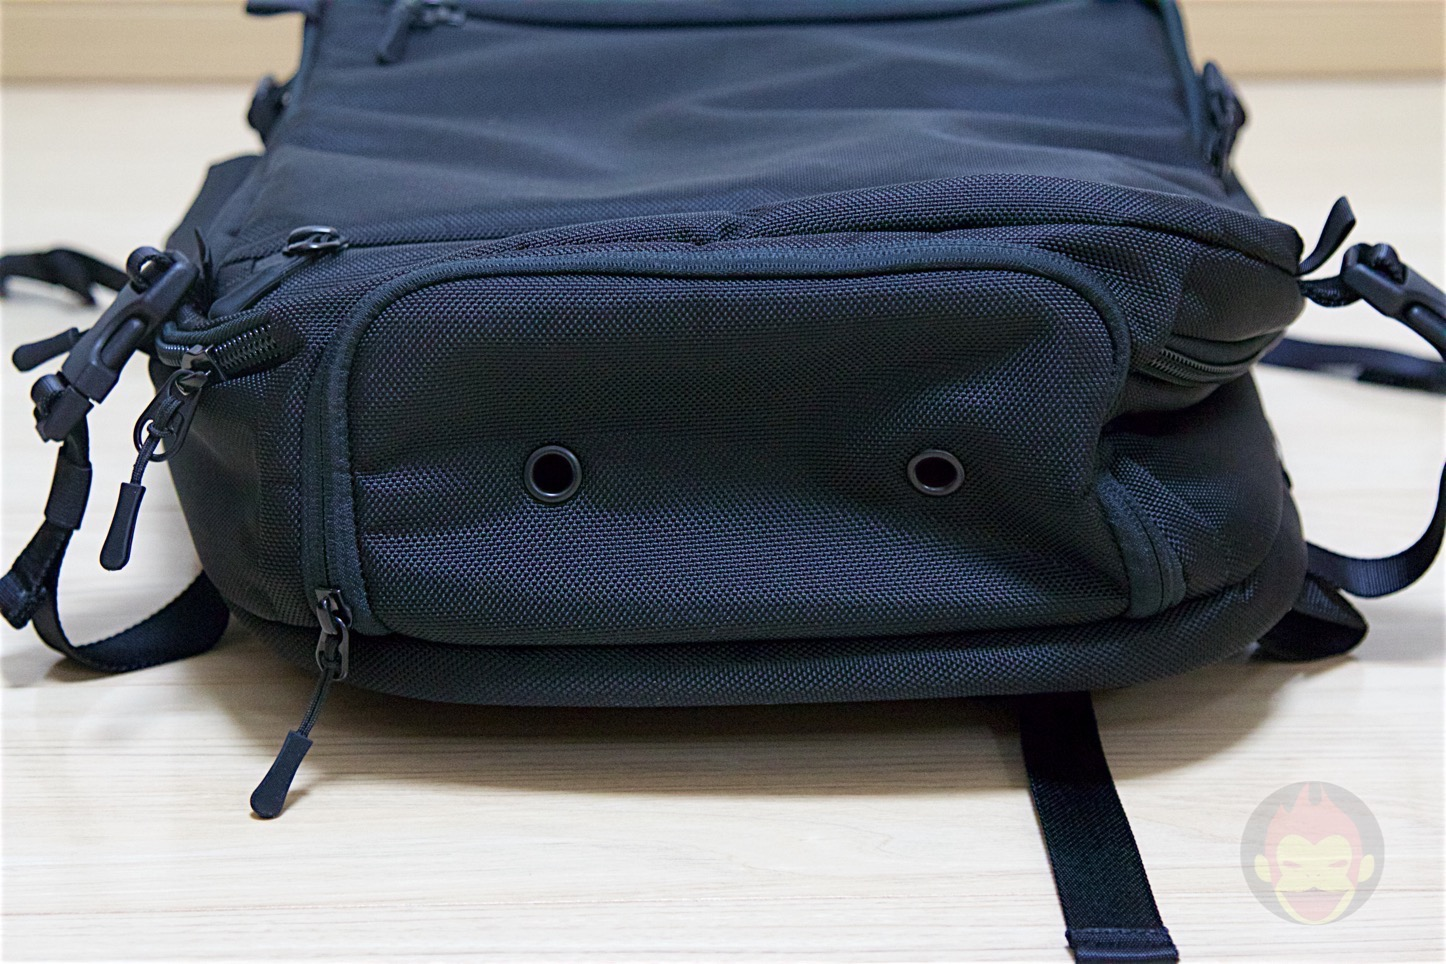 Aer-Travel-BackPack-on-Kickstarter-28.jpg